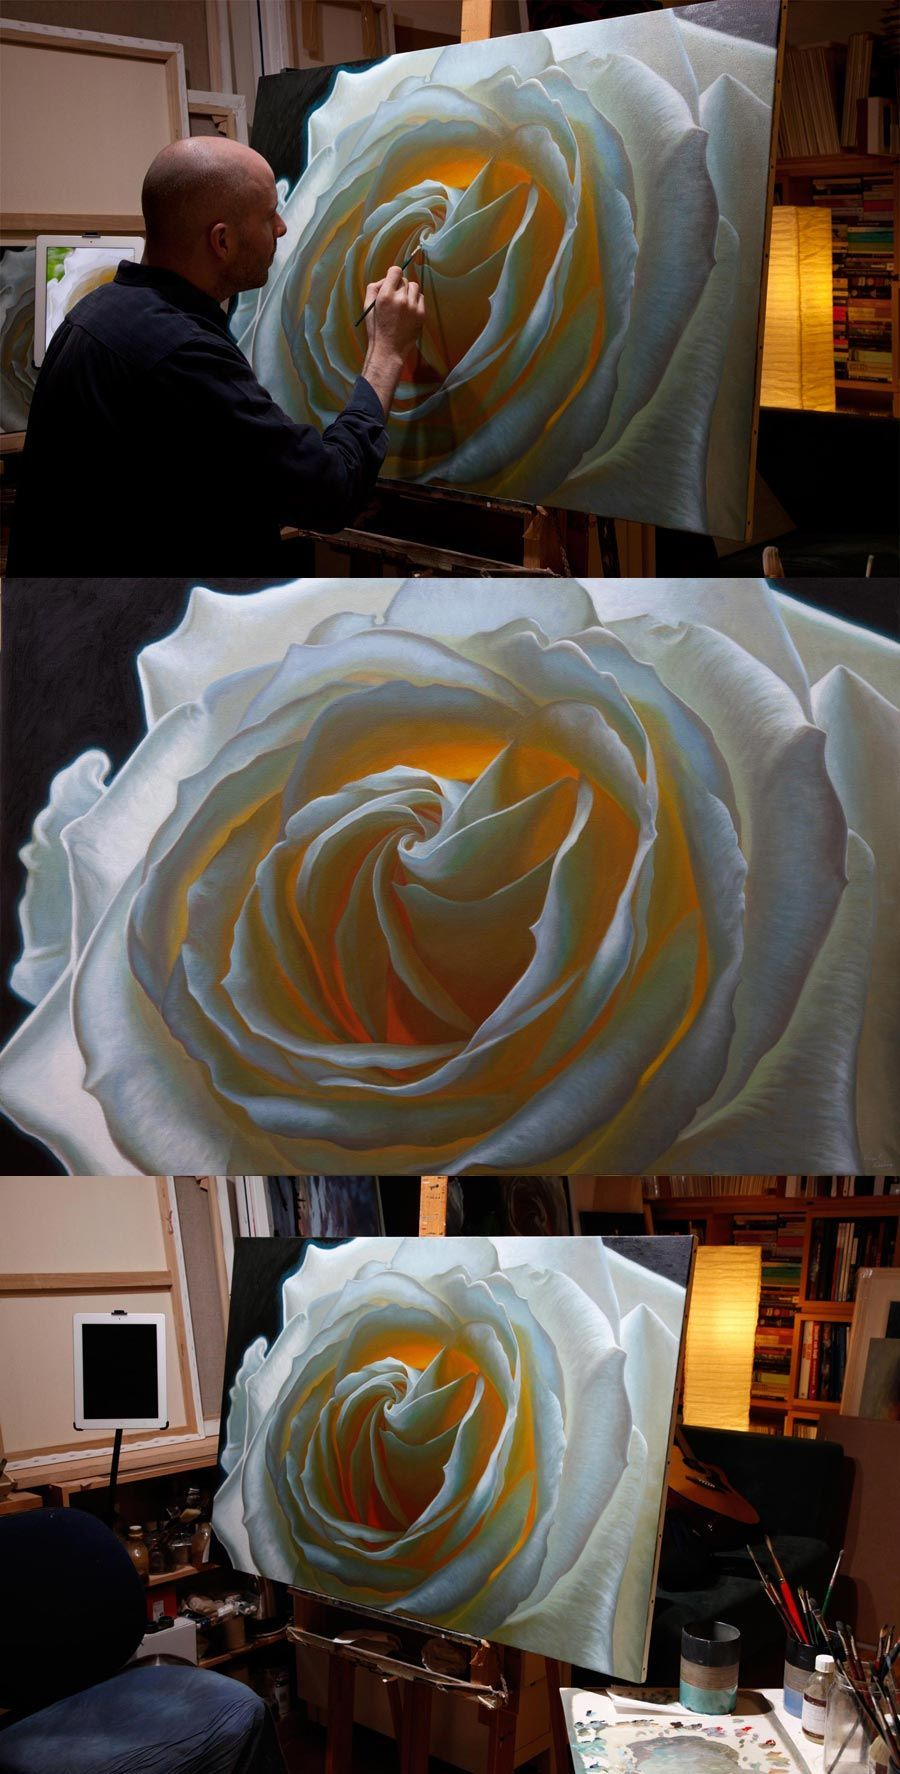 Oil painting of a white rose by artist vincent keeling